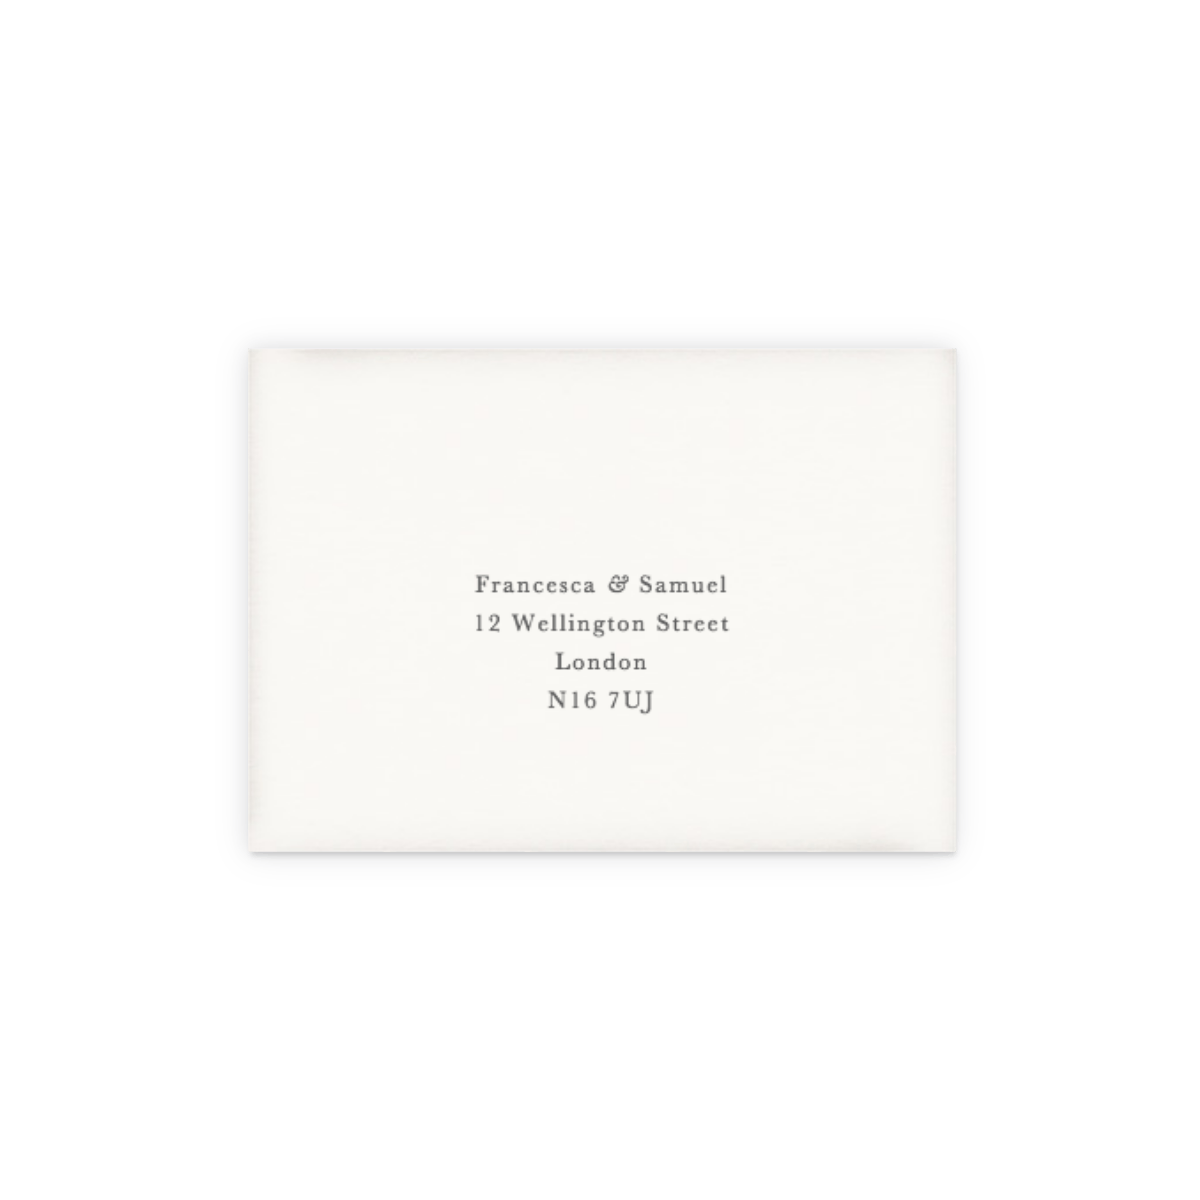 Https%3a%2f%2fwww.papier.com%2fproduct image%2f20491%2f12%2fblooming peonies 5240 rsvp envelope 1535560088.png?ixlib=rb 1.1